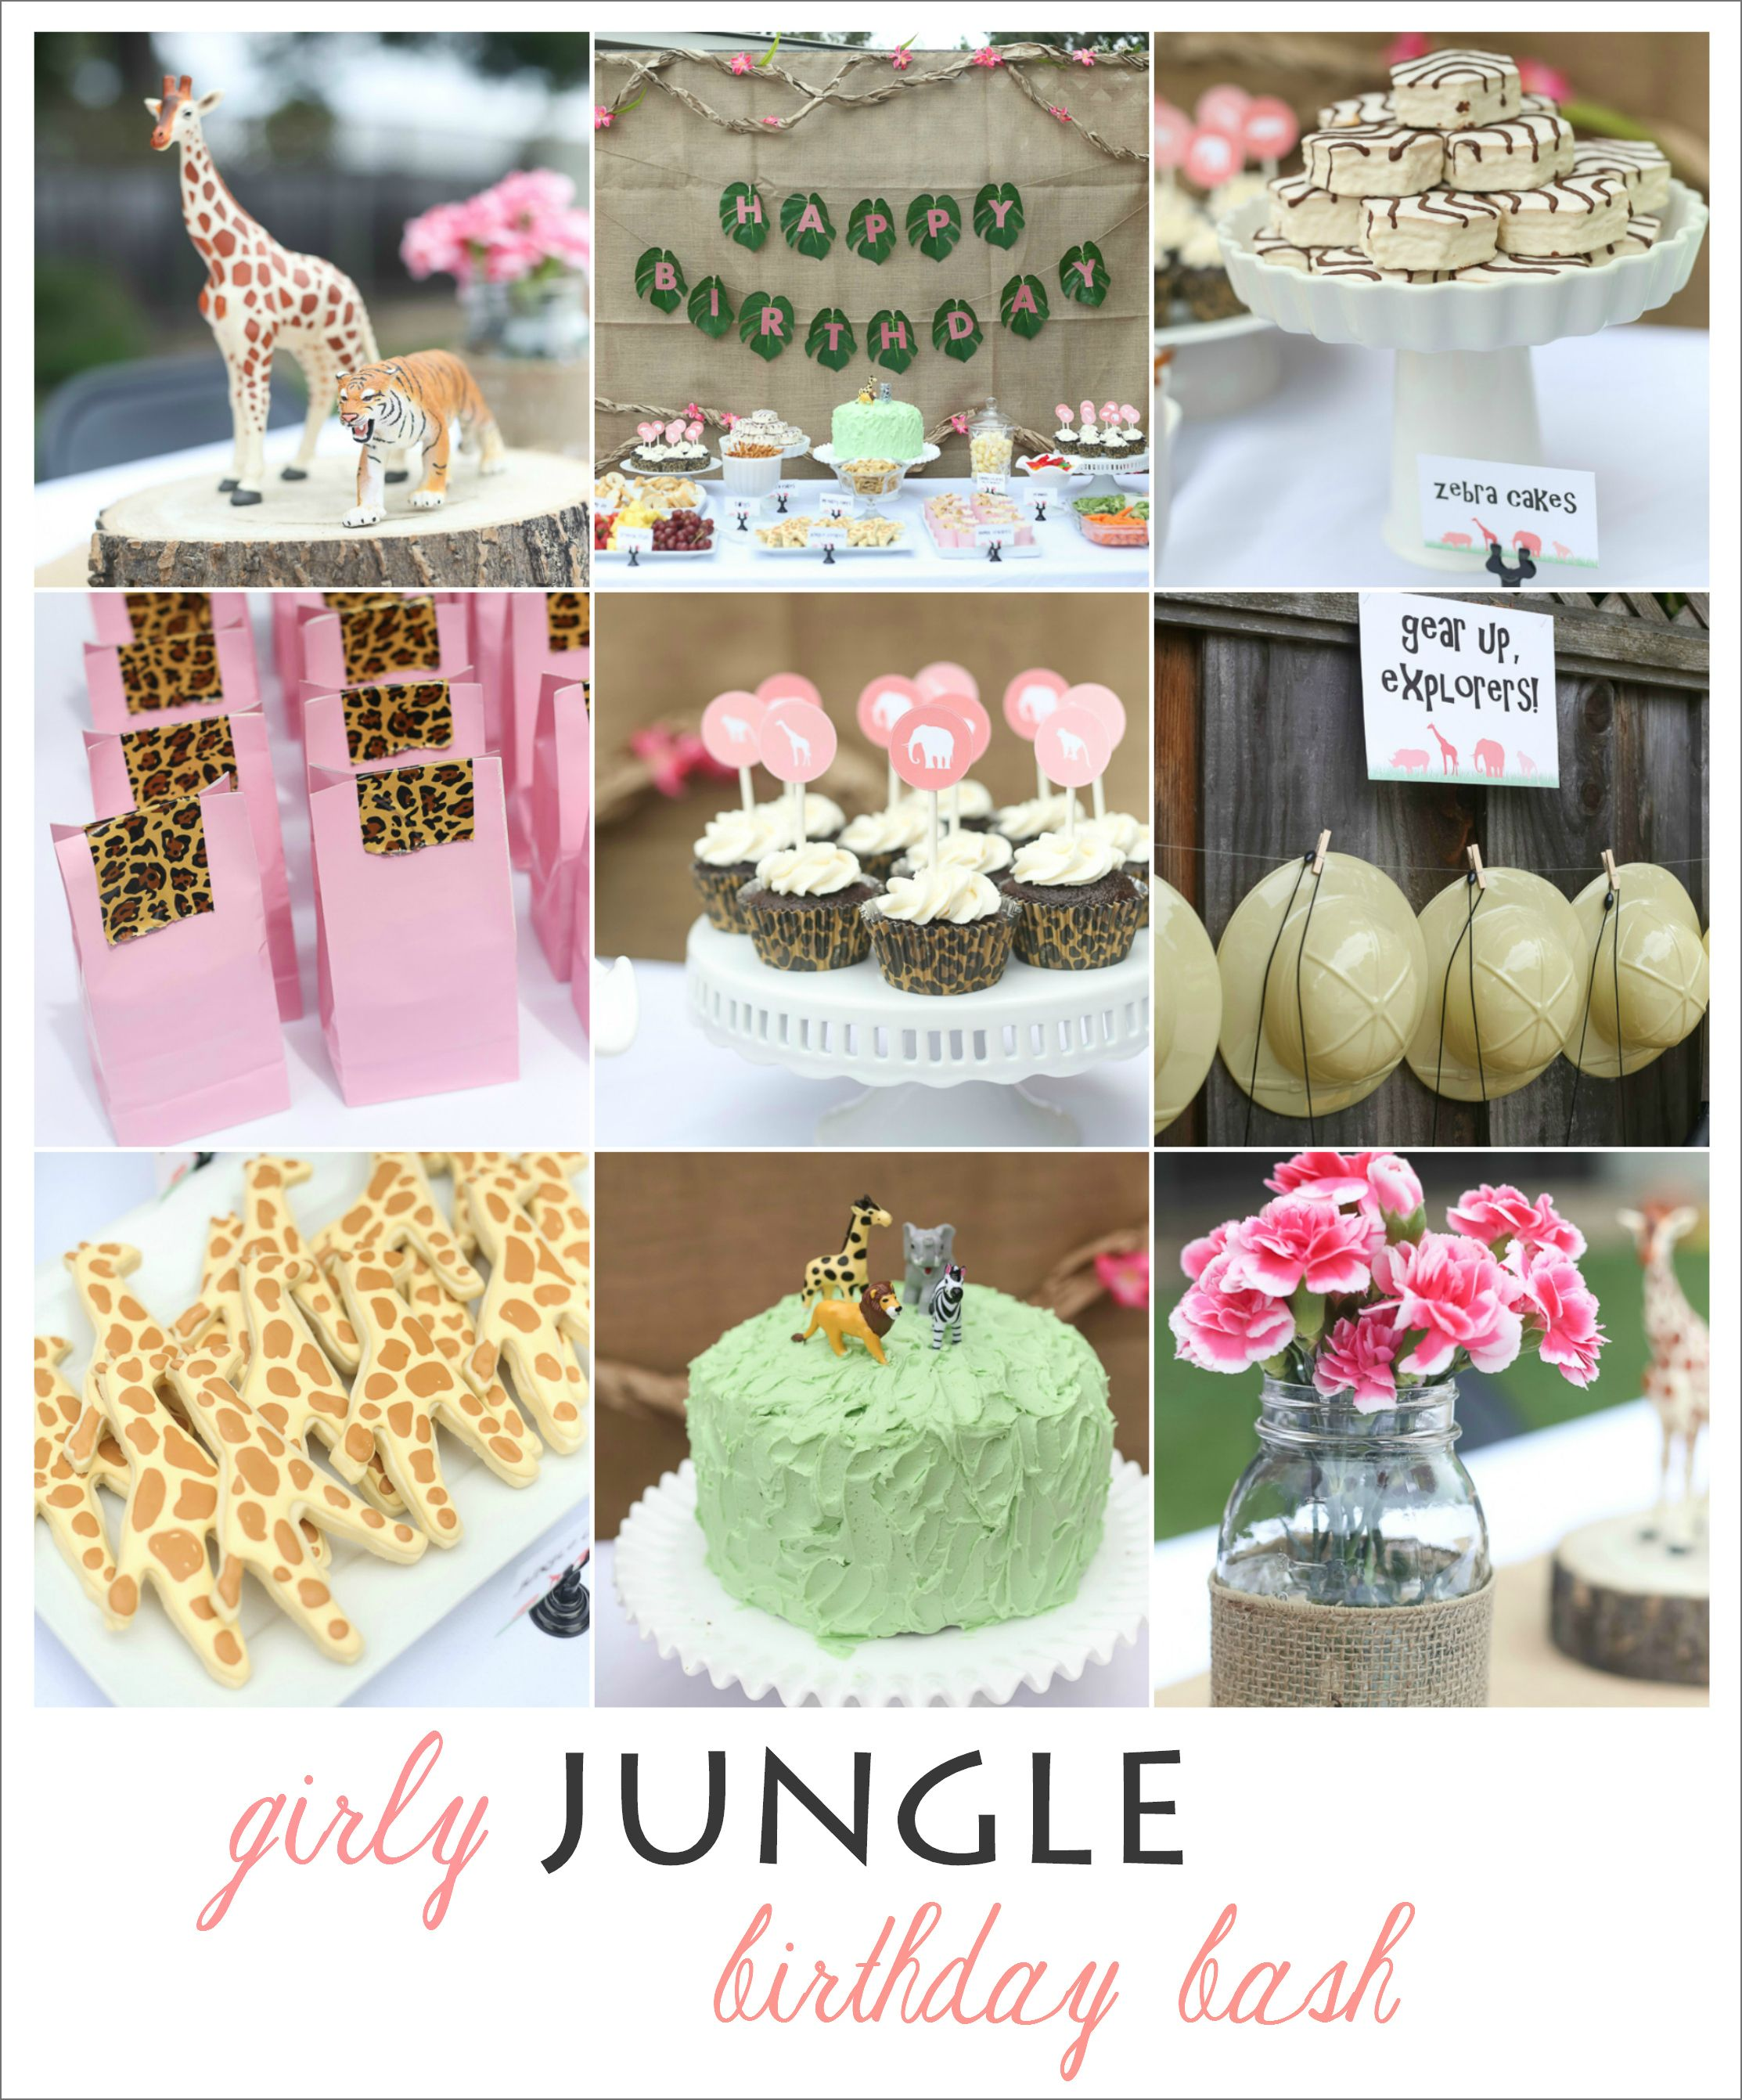 girly jungle birthday bash